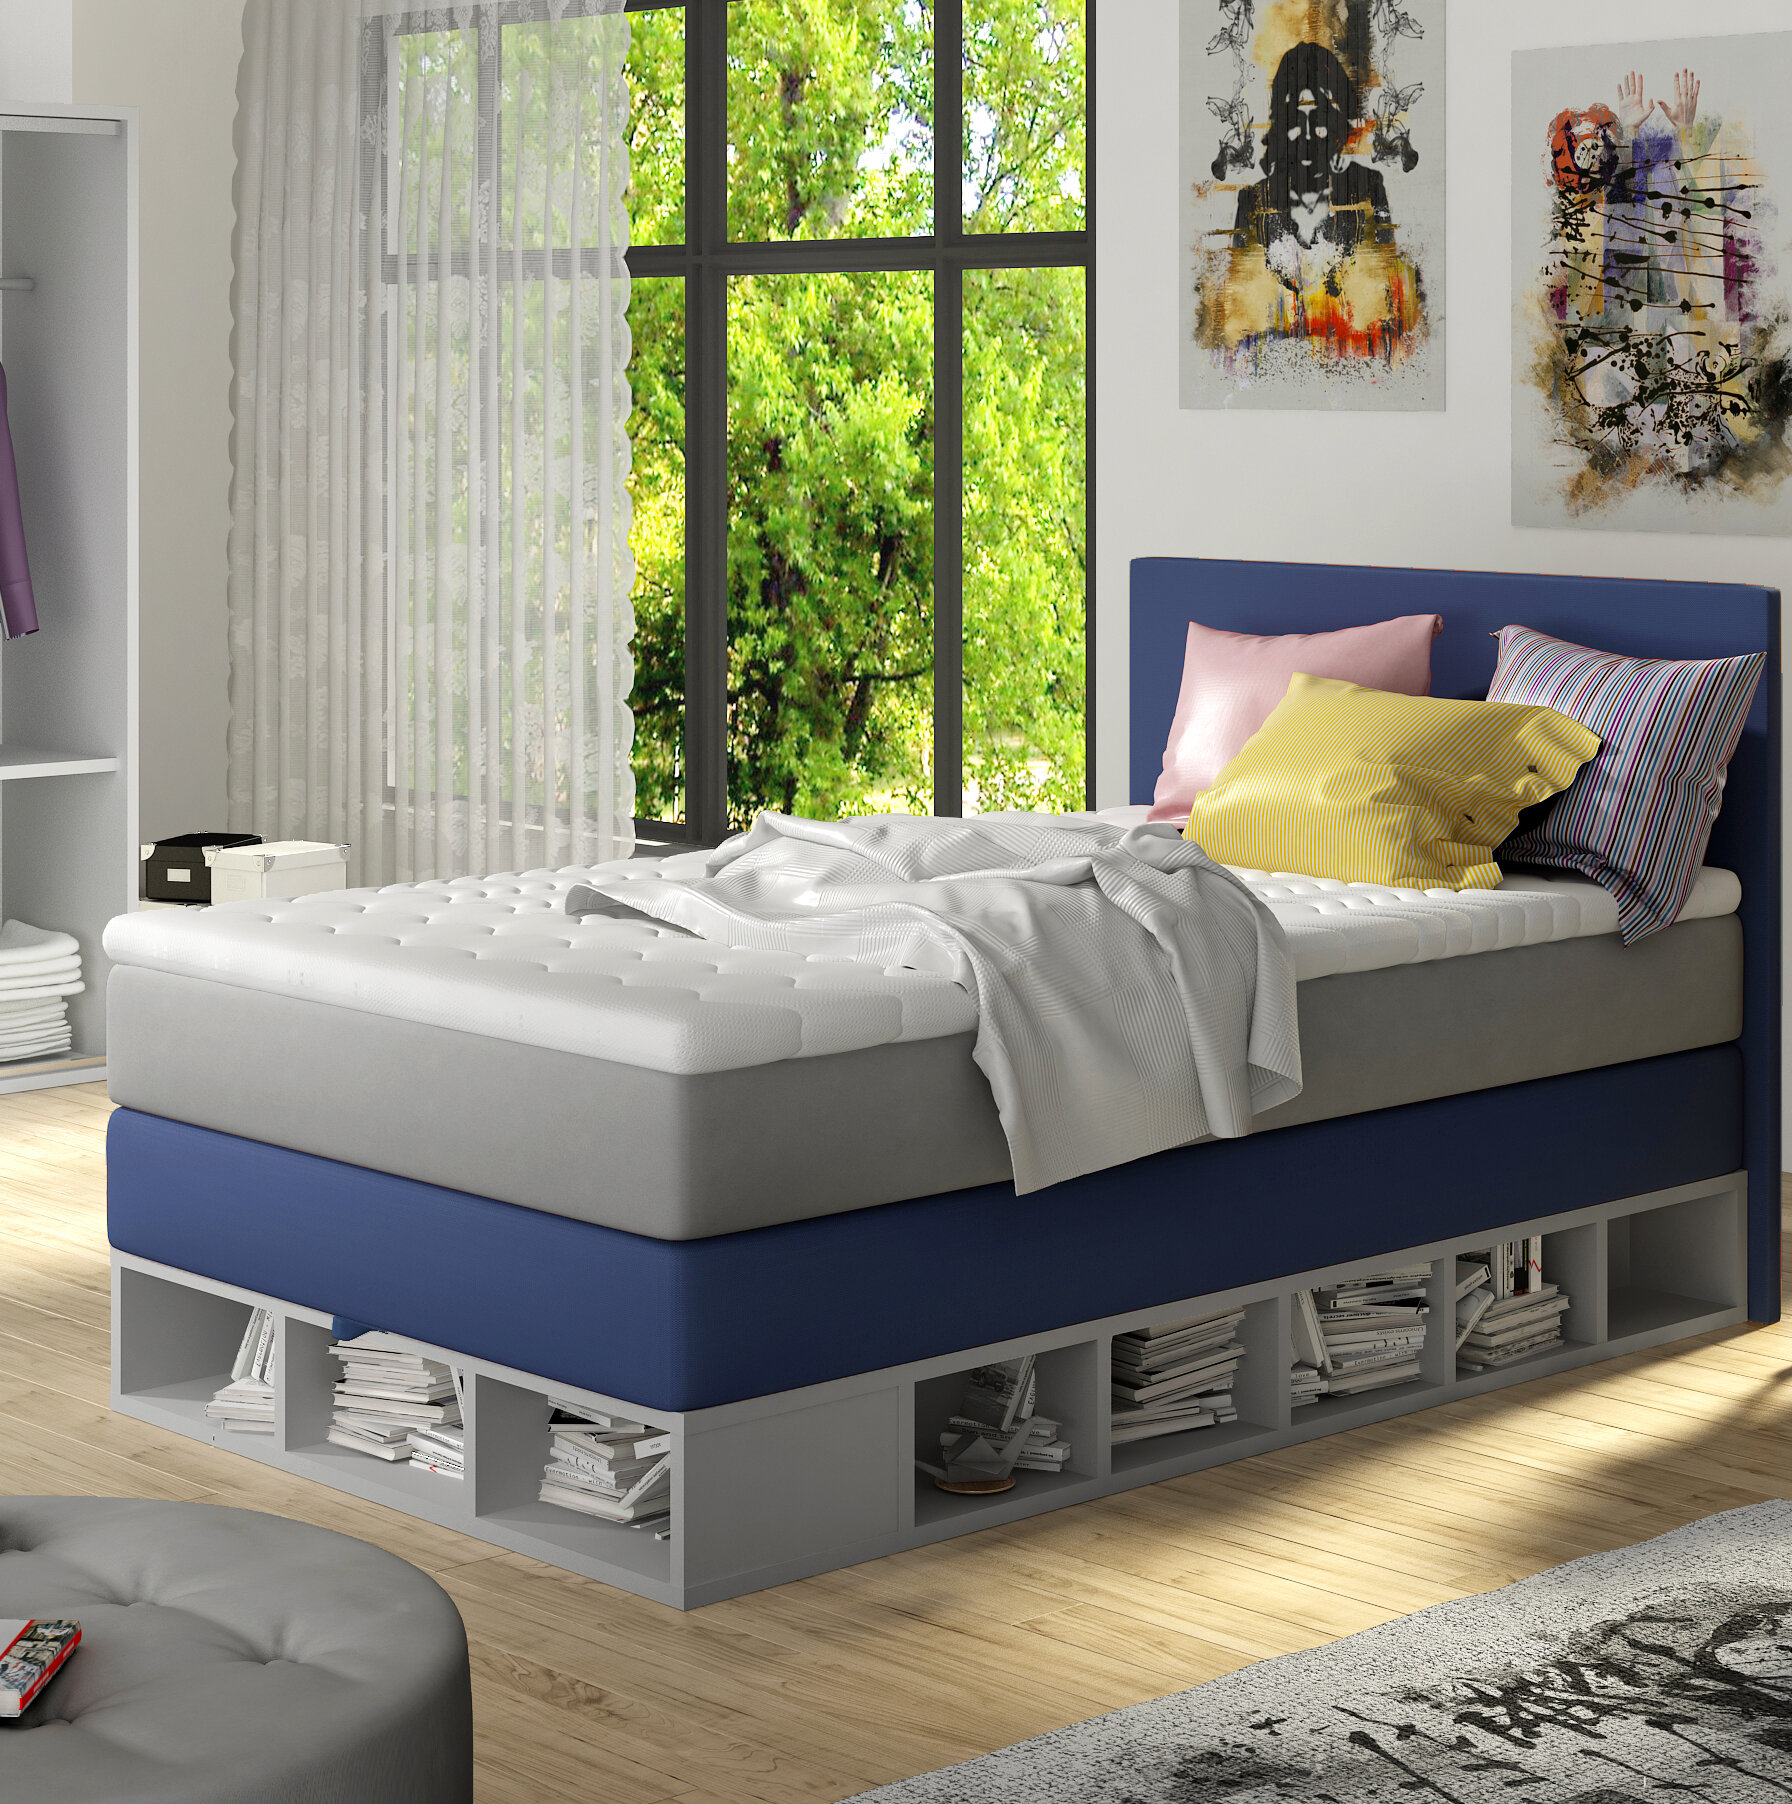 Zoomie Kids Extra Long Twin Platform Bed With Mattress